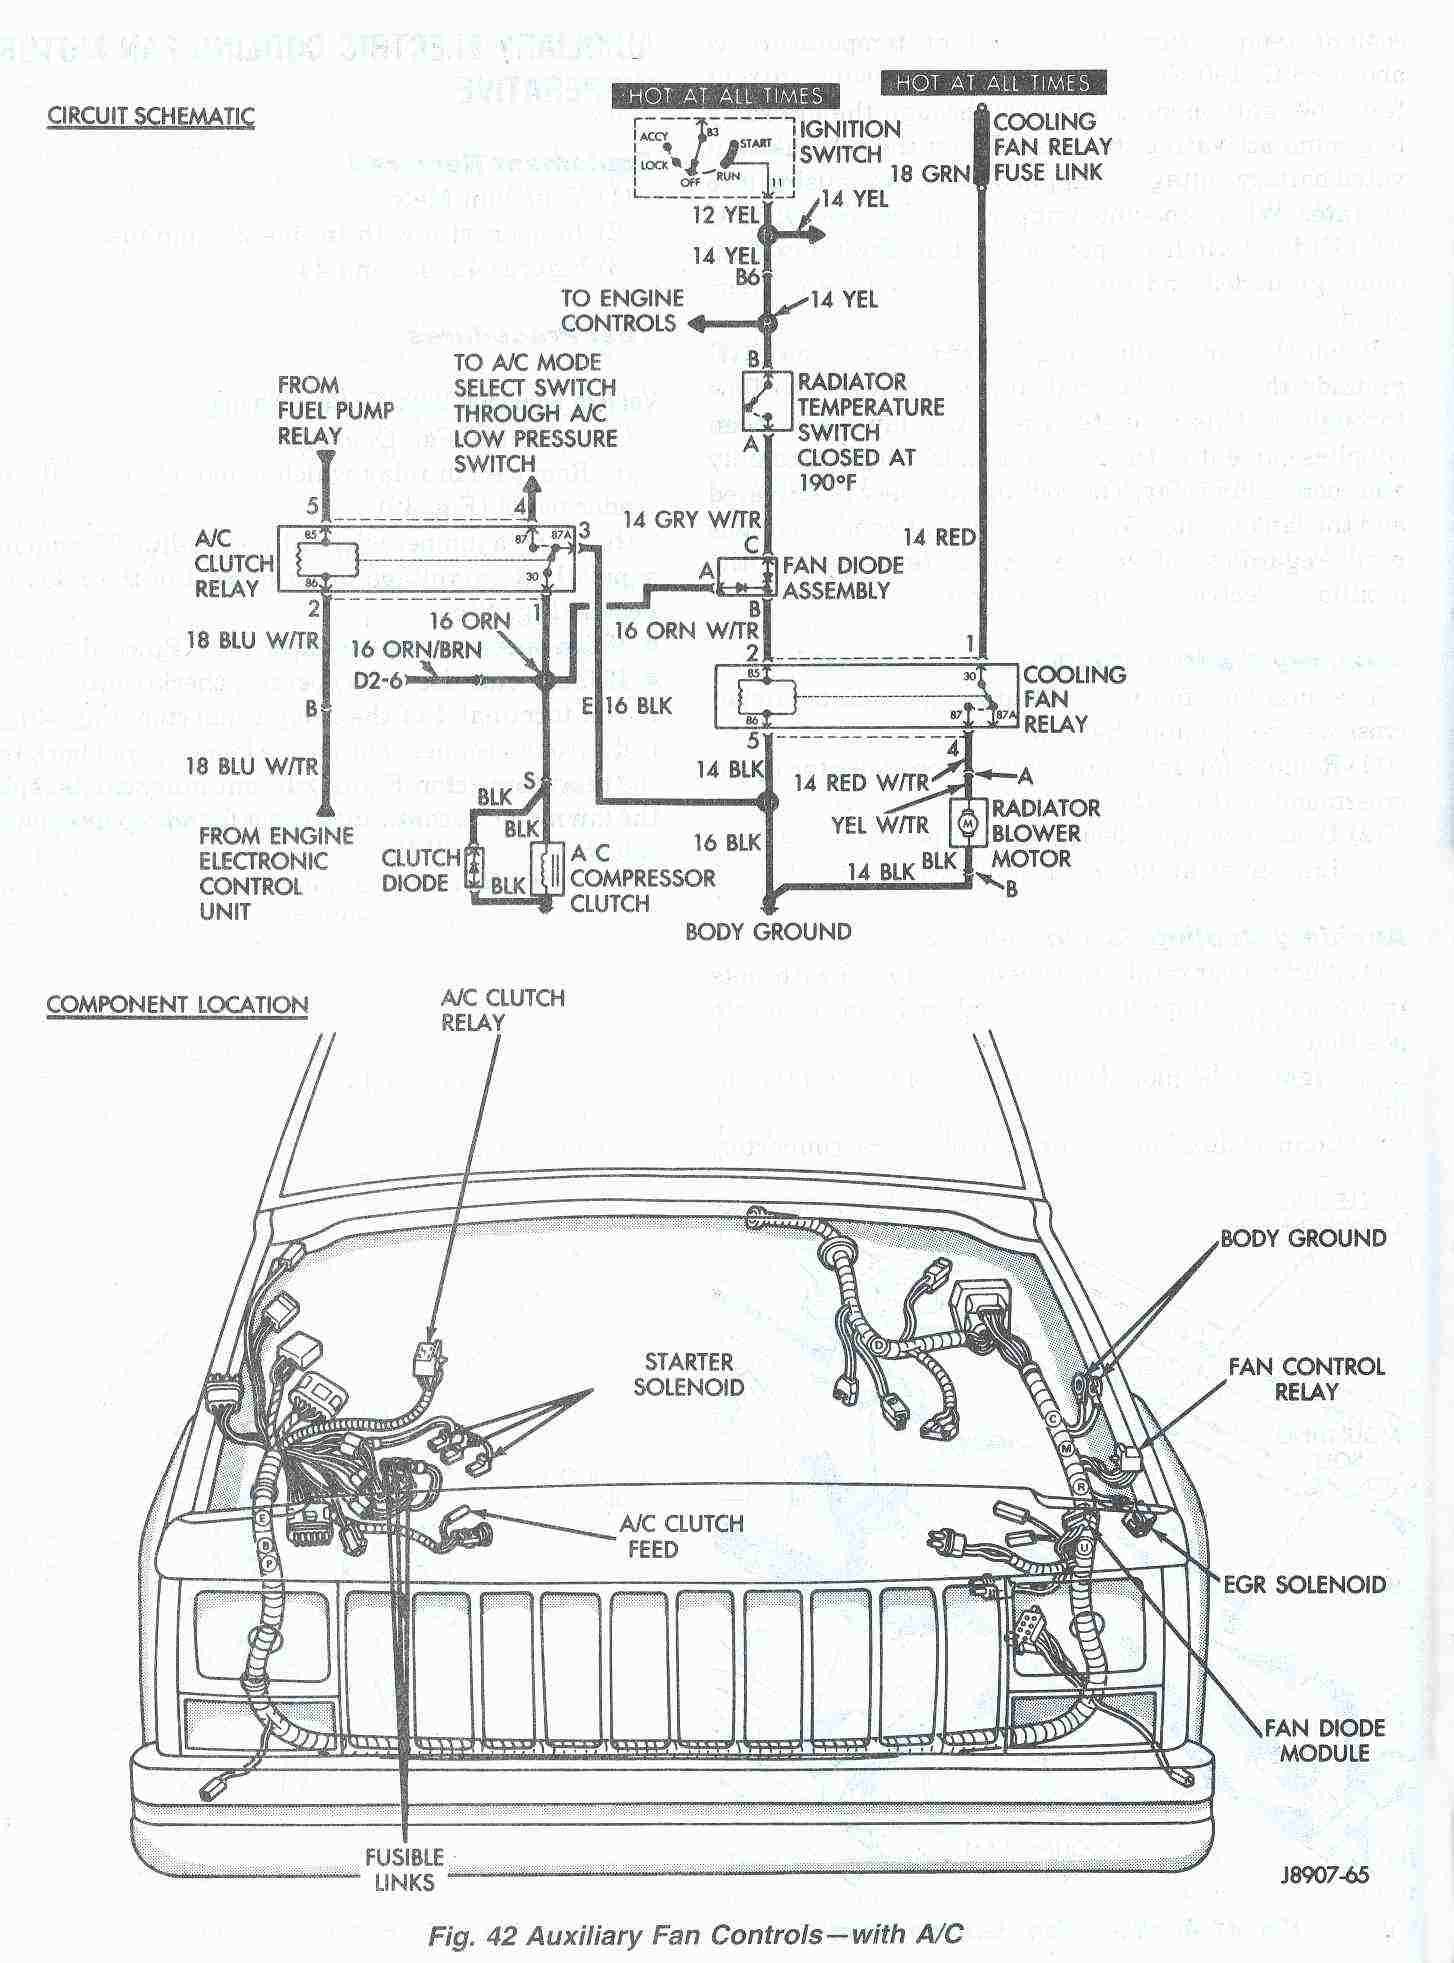 e8c83109bad6c41d377df8c1cb7a8dc4 at the asd relay if vole is not b16 check fuse 20 30 a good there 96 jeep cherokee wiring diagram at reclaimingppi.co